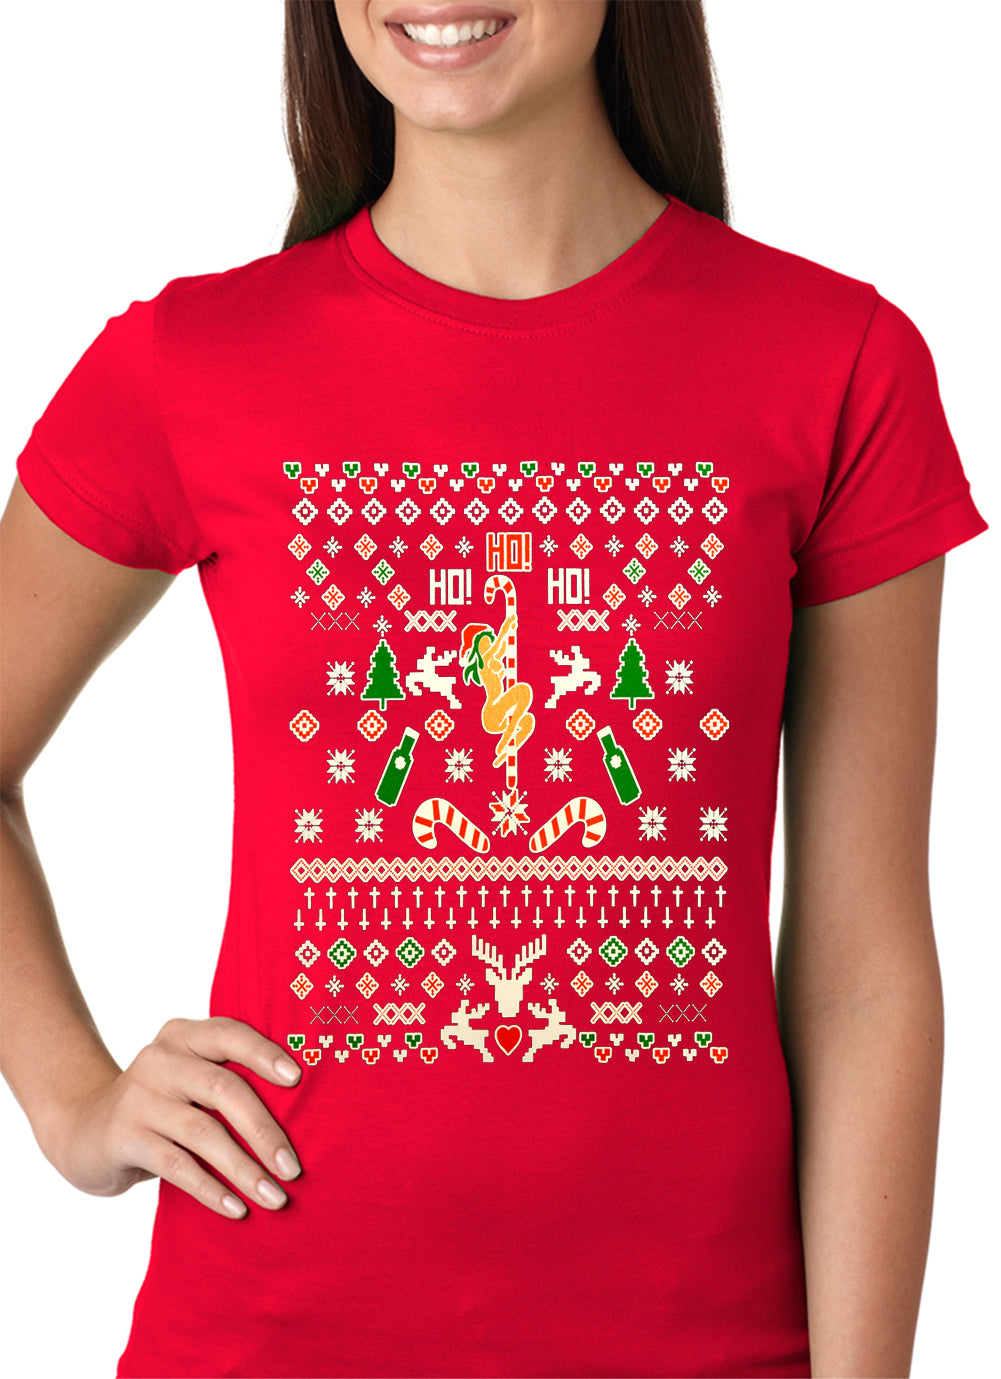 Ugly Christmas T-shirt - Sexy Stripper on a Pole Girls T-shirt